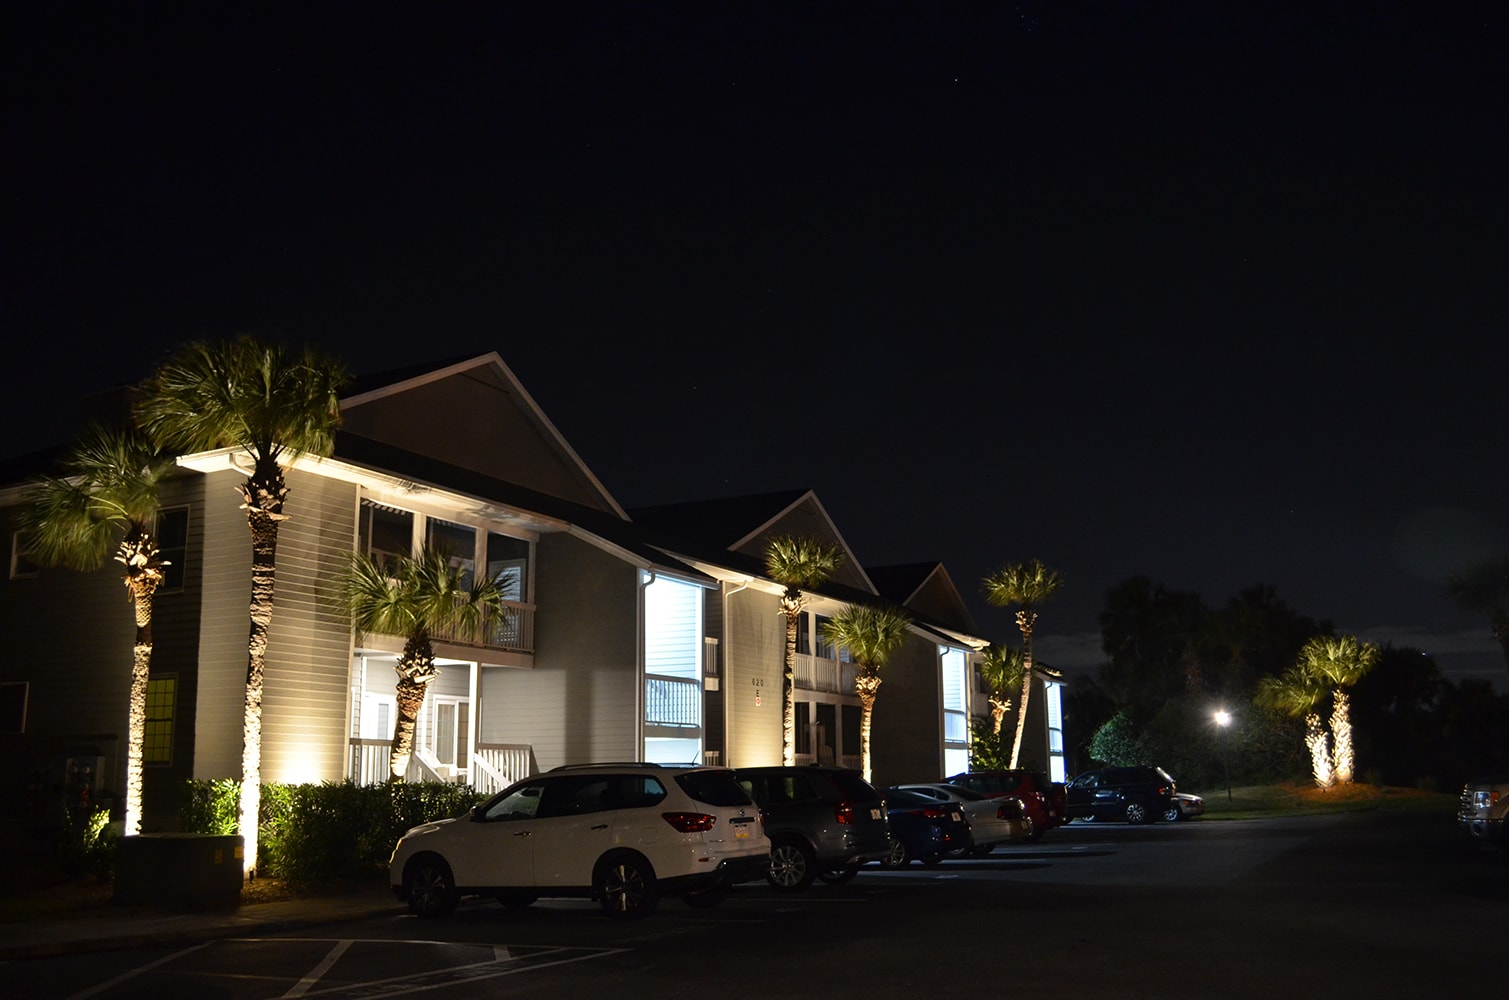 Apartment complex with exterior lights